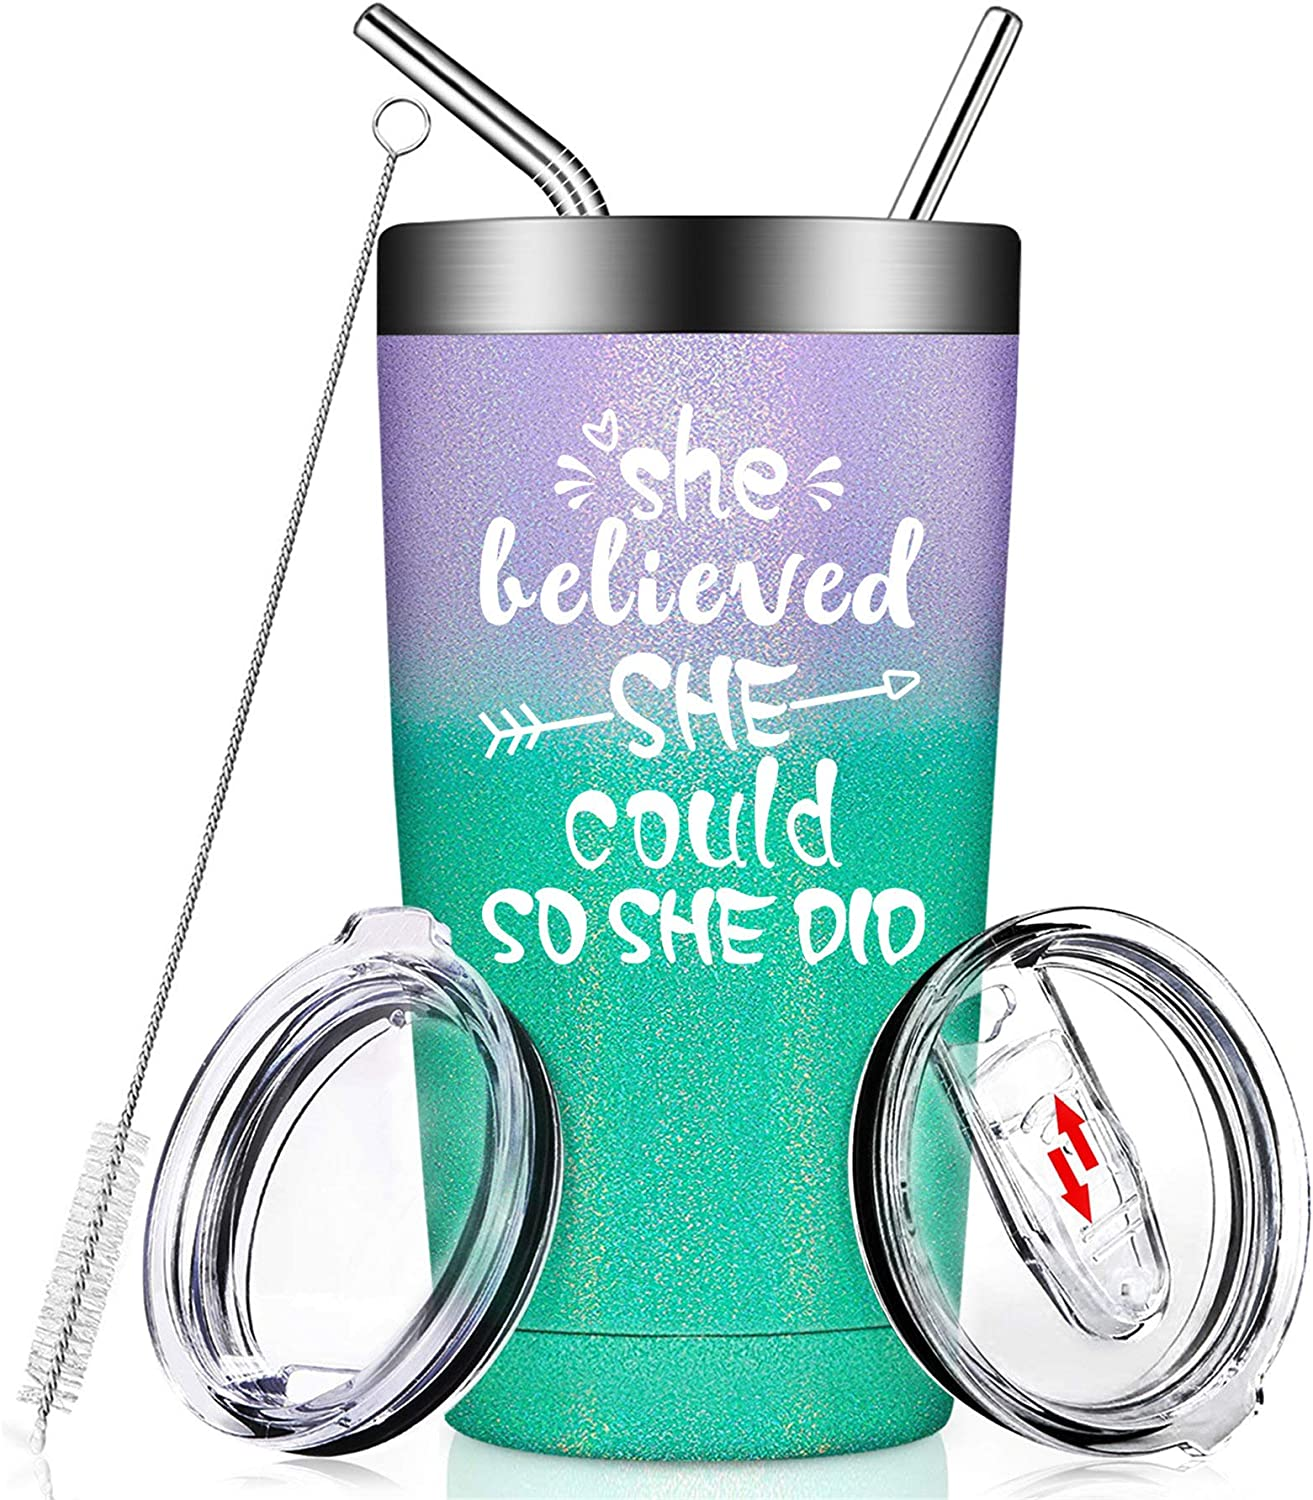 She Believed She Could So She Did - Funny Birthday Congratulations Spiritual Inspirational Gifts for Women, Her, Friend, Coworker, Going Away, College Graduation, Job Change, Insulated 20oz Tumbler